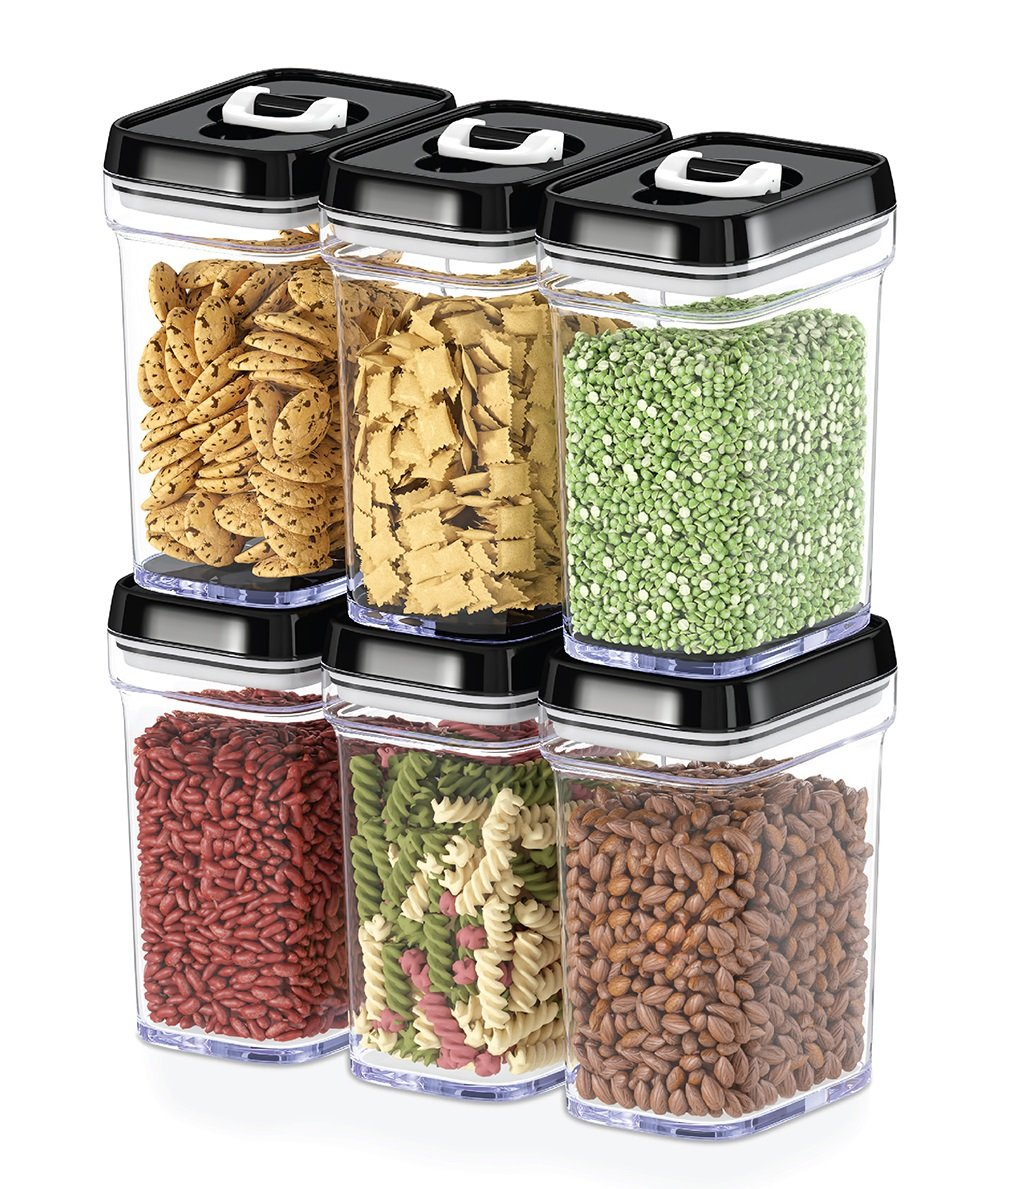 DWËLLZA KITCHEN Airtight Food Storage Containers with Lids - 6 Piece Set/All Same Size - Air Tight Snacks Pantry & Kitchen Container - Clear Plastic BPA-Free - Keeps Food Fresh & Dry by DWELLZA